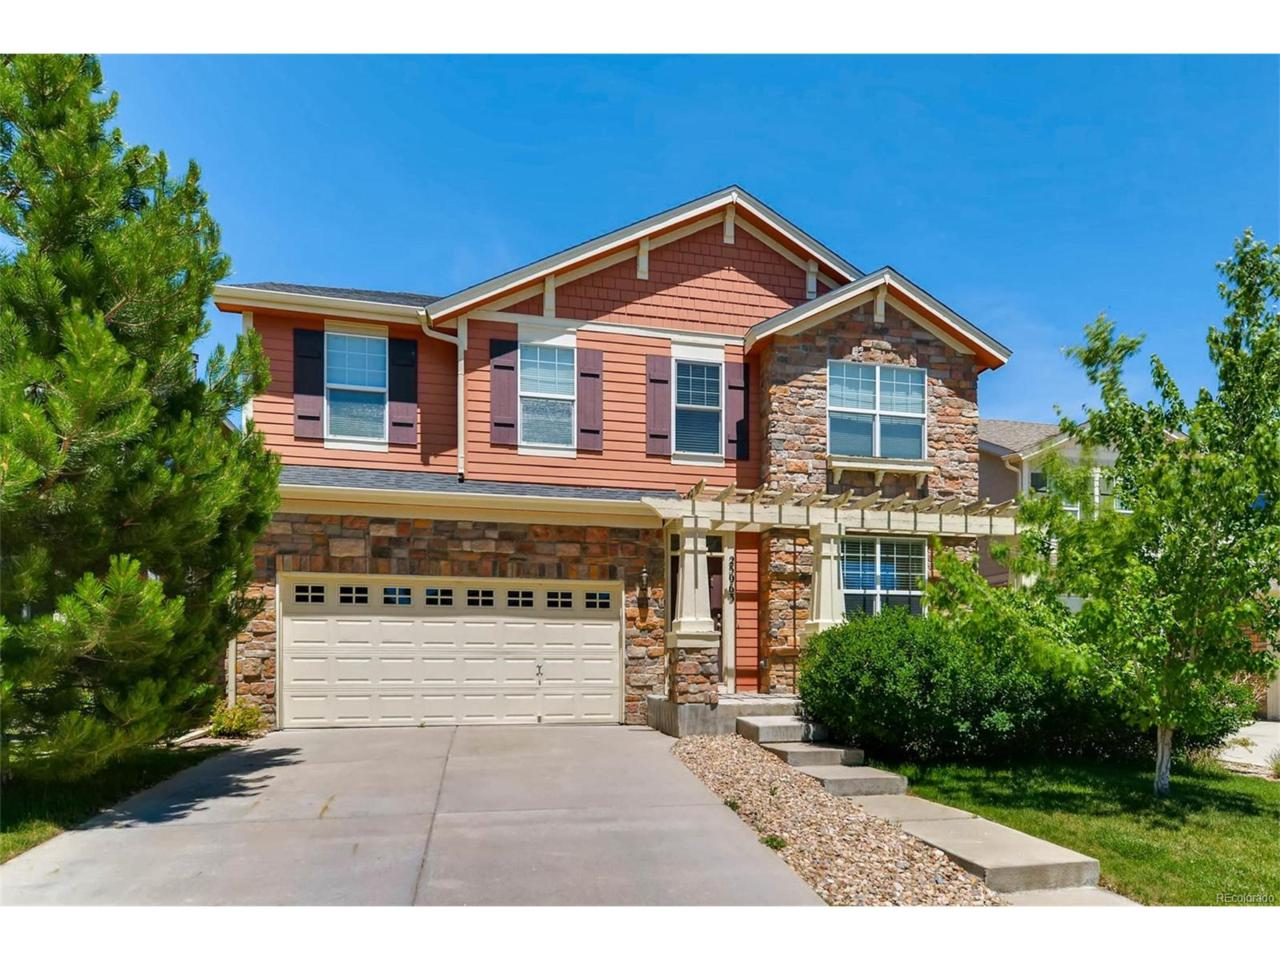 25963 E Geddes Circle, Aurora, CO 80016 (MLS #4429485) :: 8z Real Estate